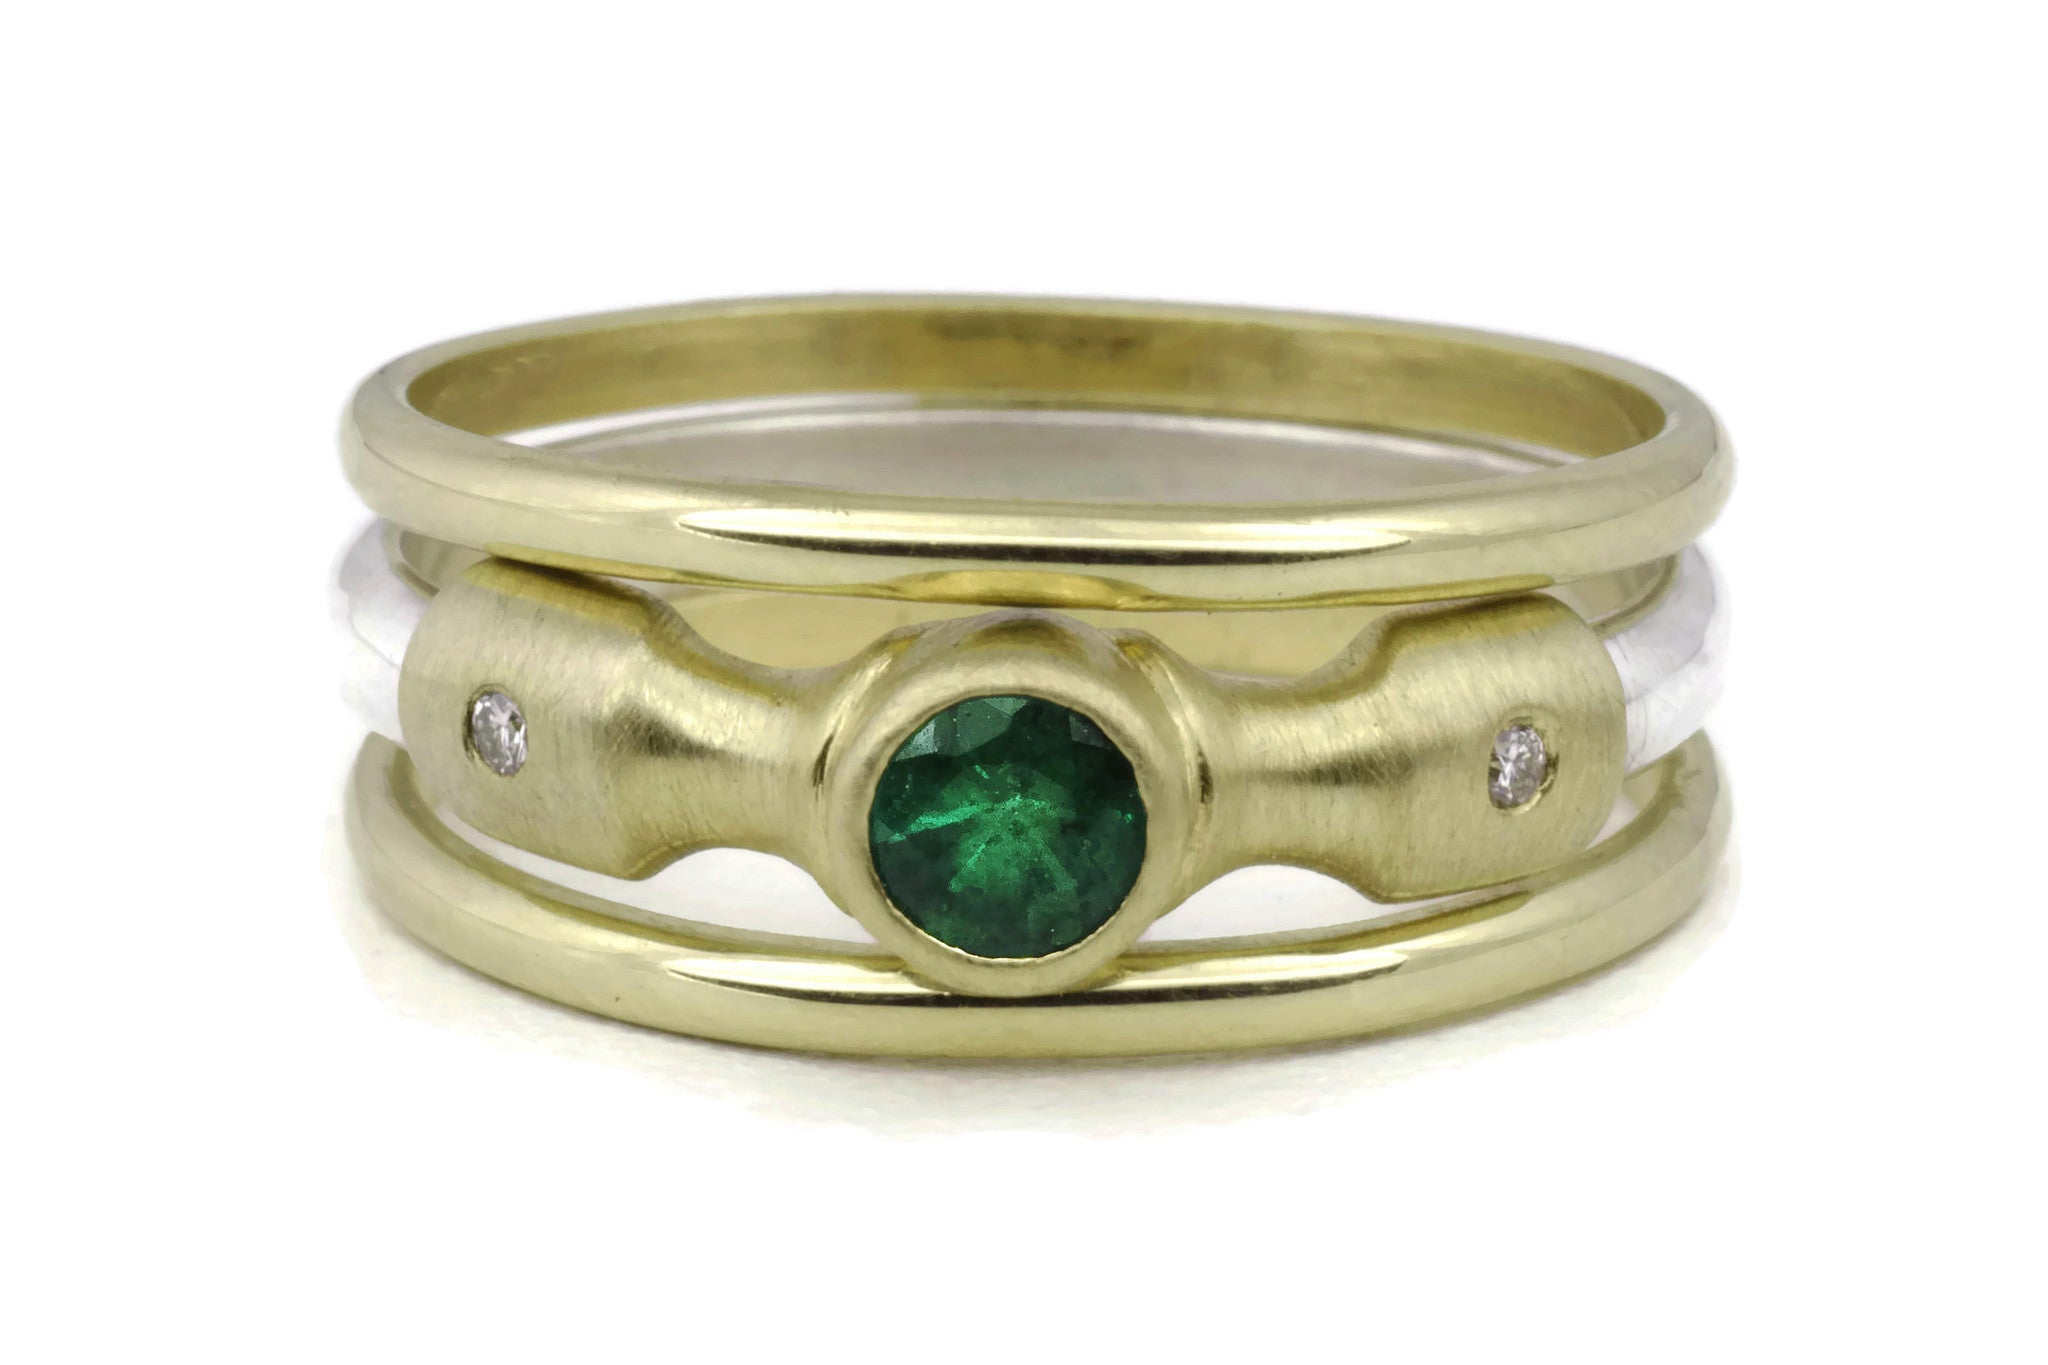 bea r wedding unique rings bridal green anna hbz fashion emerald engagement beautiful sheffield ring